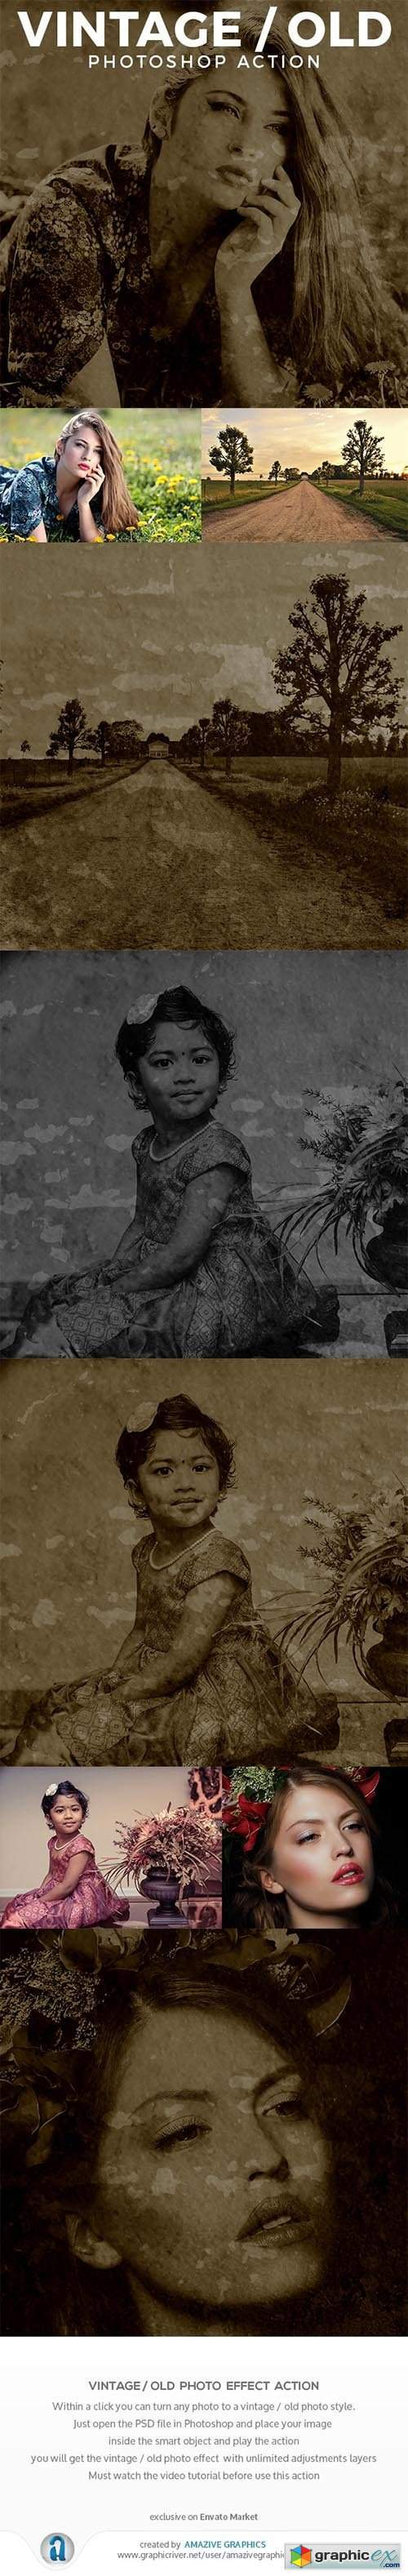 Vintage / Old Photo Effect